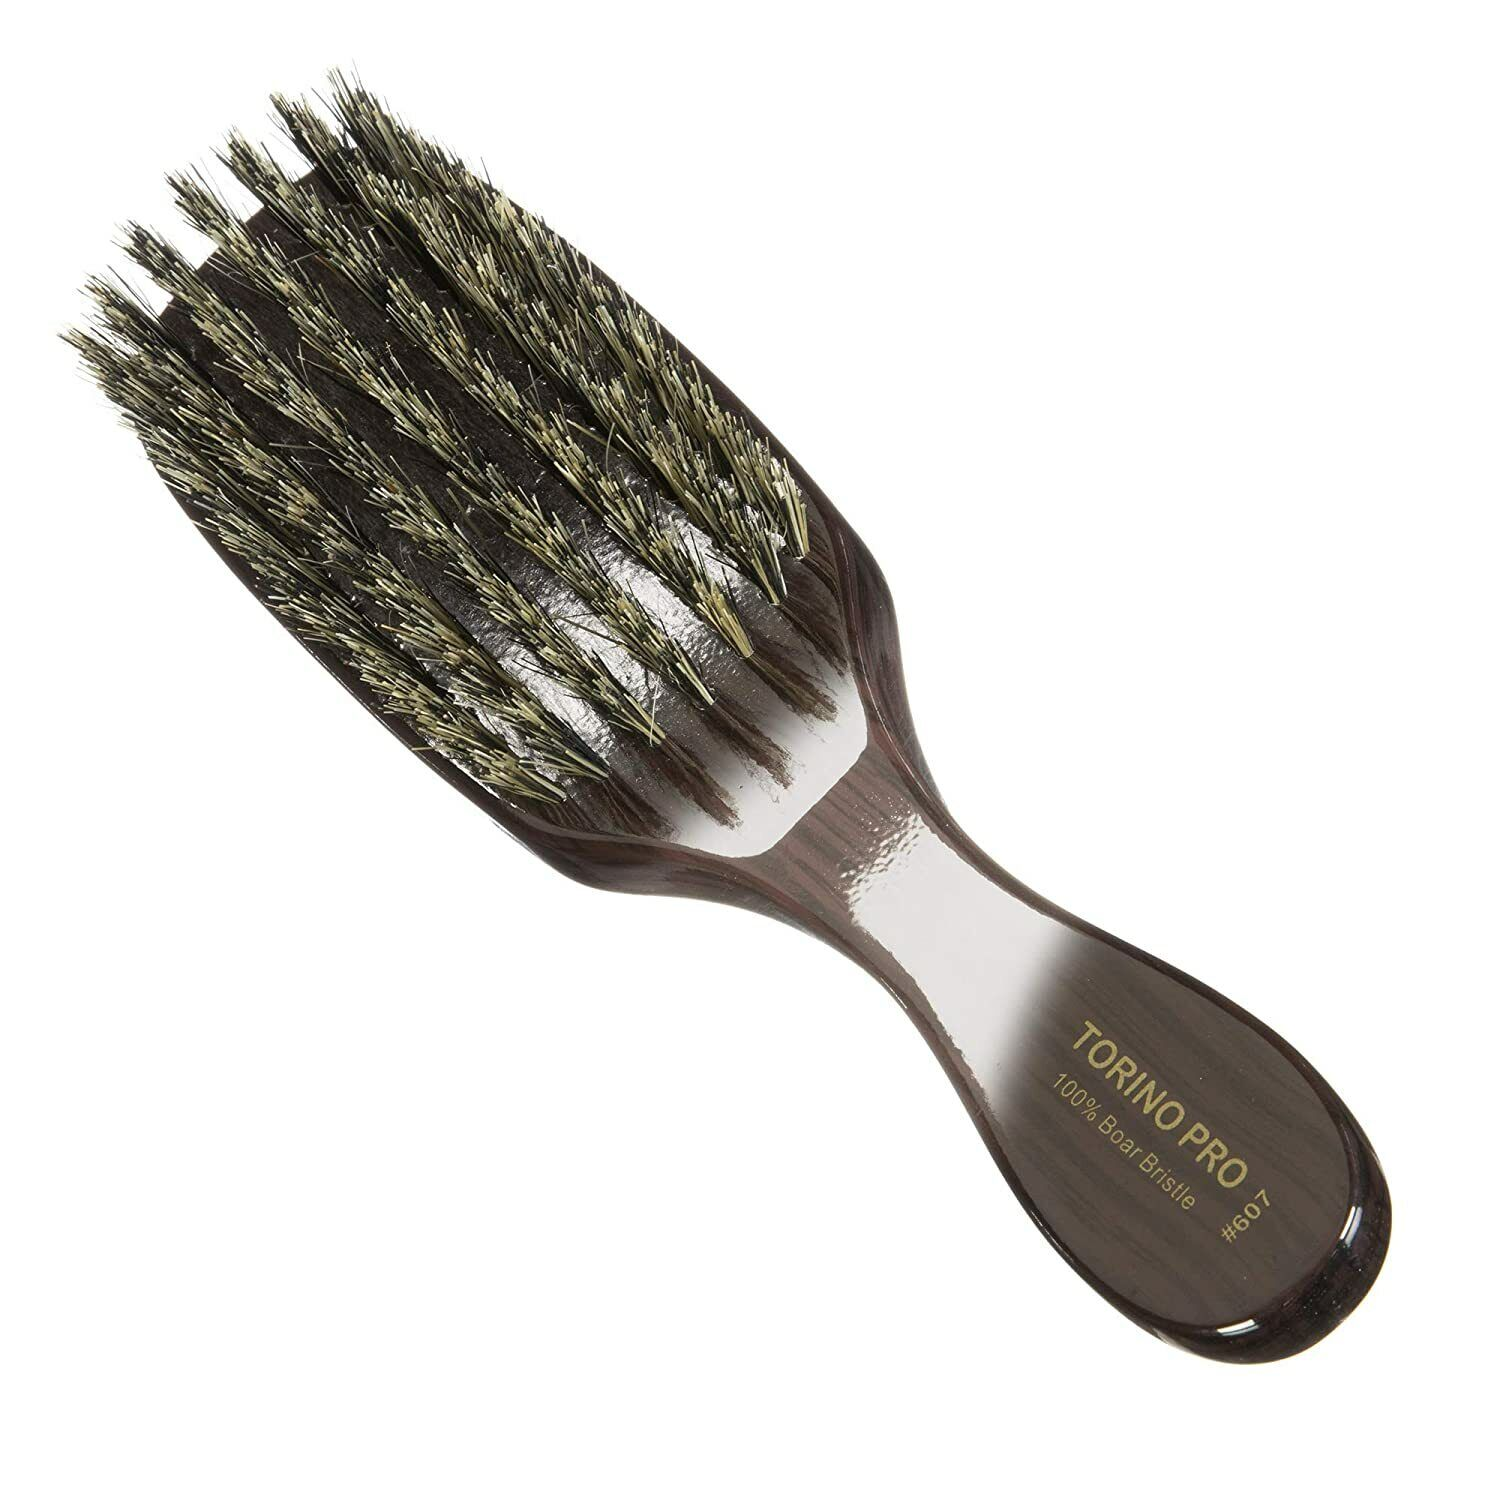 TORINO PRO Wave Brush 607 by Brush King 7 Row Medium Bristle